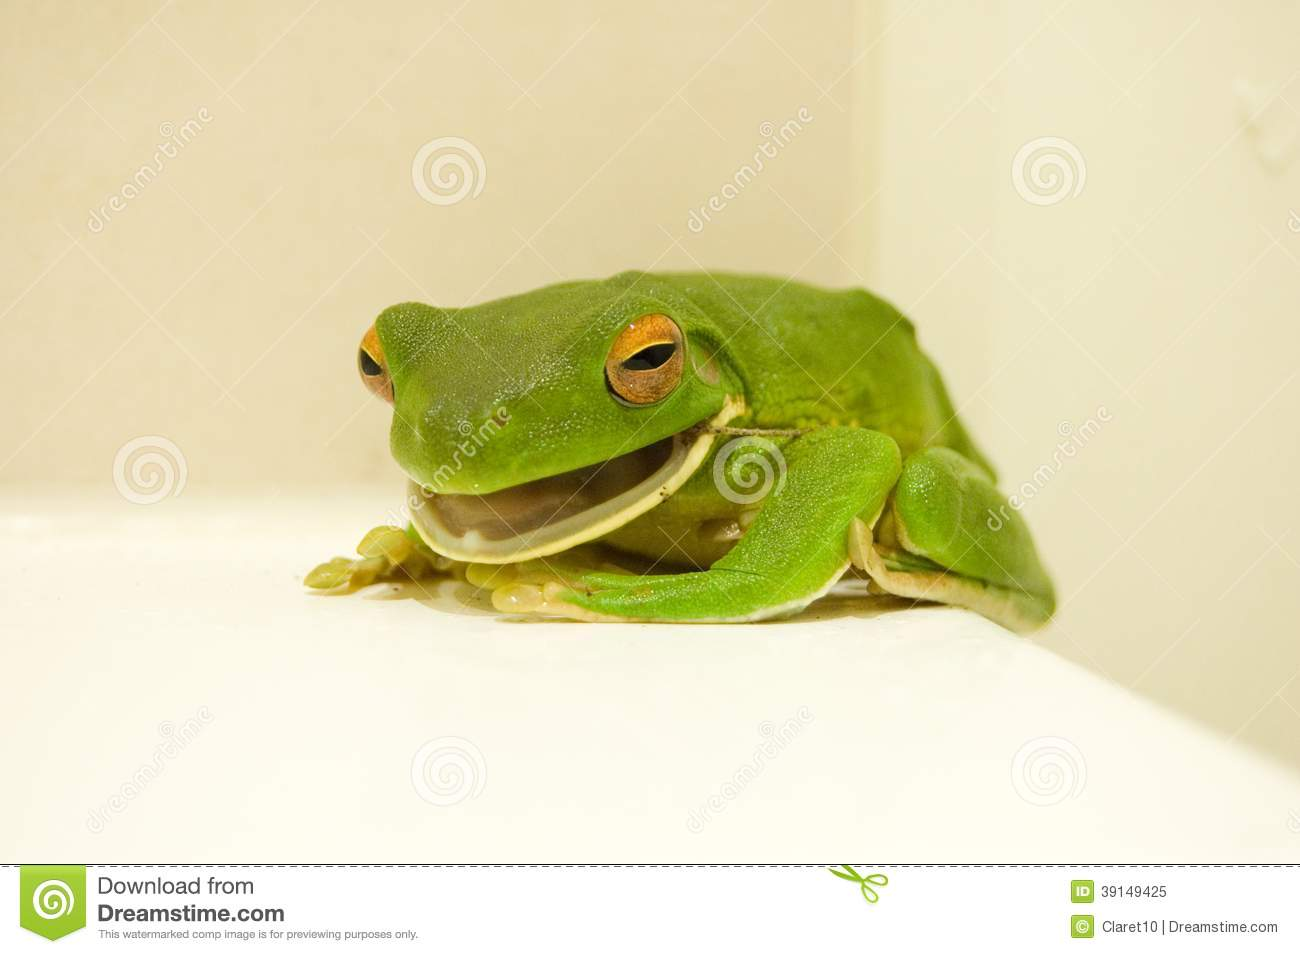 White-lipped Tree Frog clipart #6, Download drawings